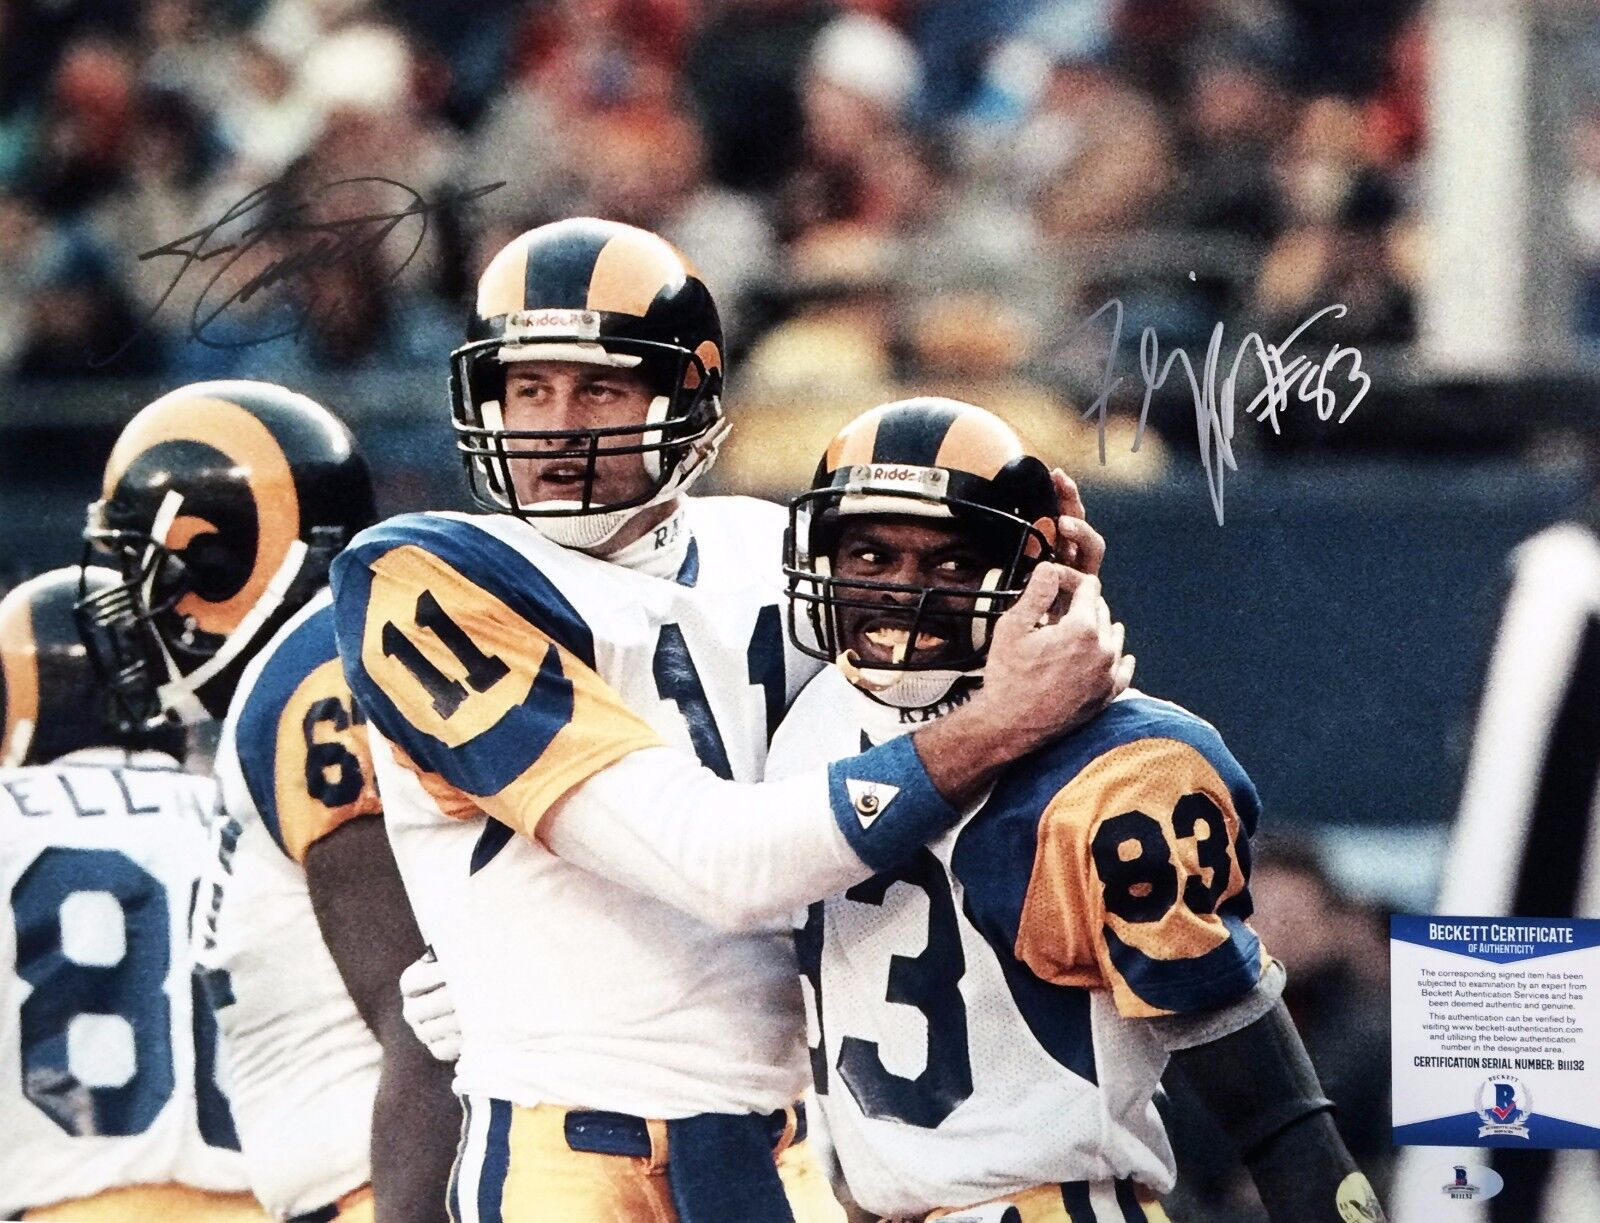 Los Angeles Rams Jim Everett Flipper Anderson Signed 16x20 Photo BAS B11132